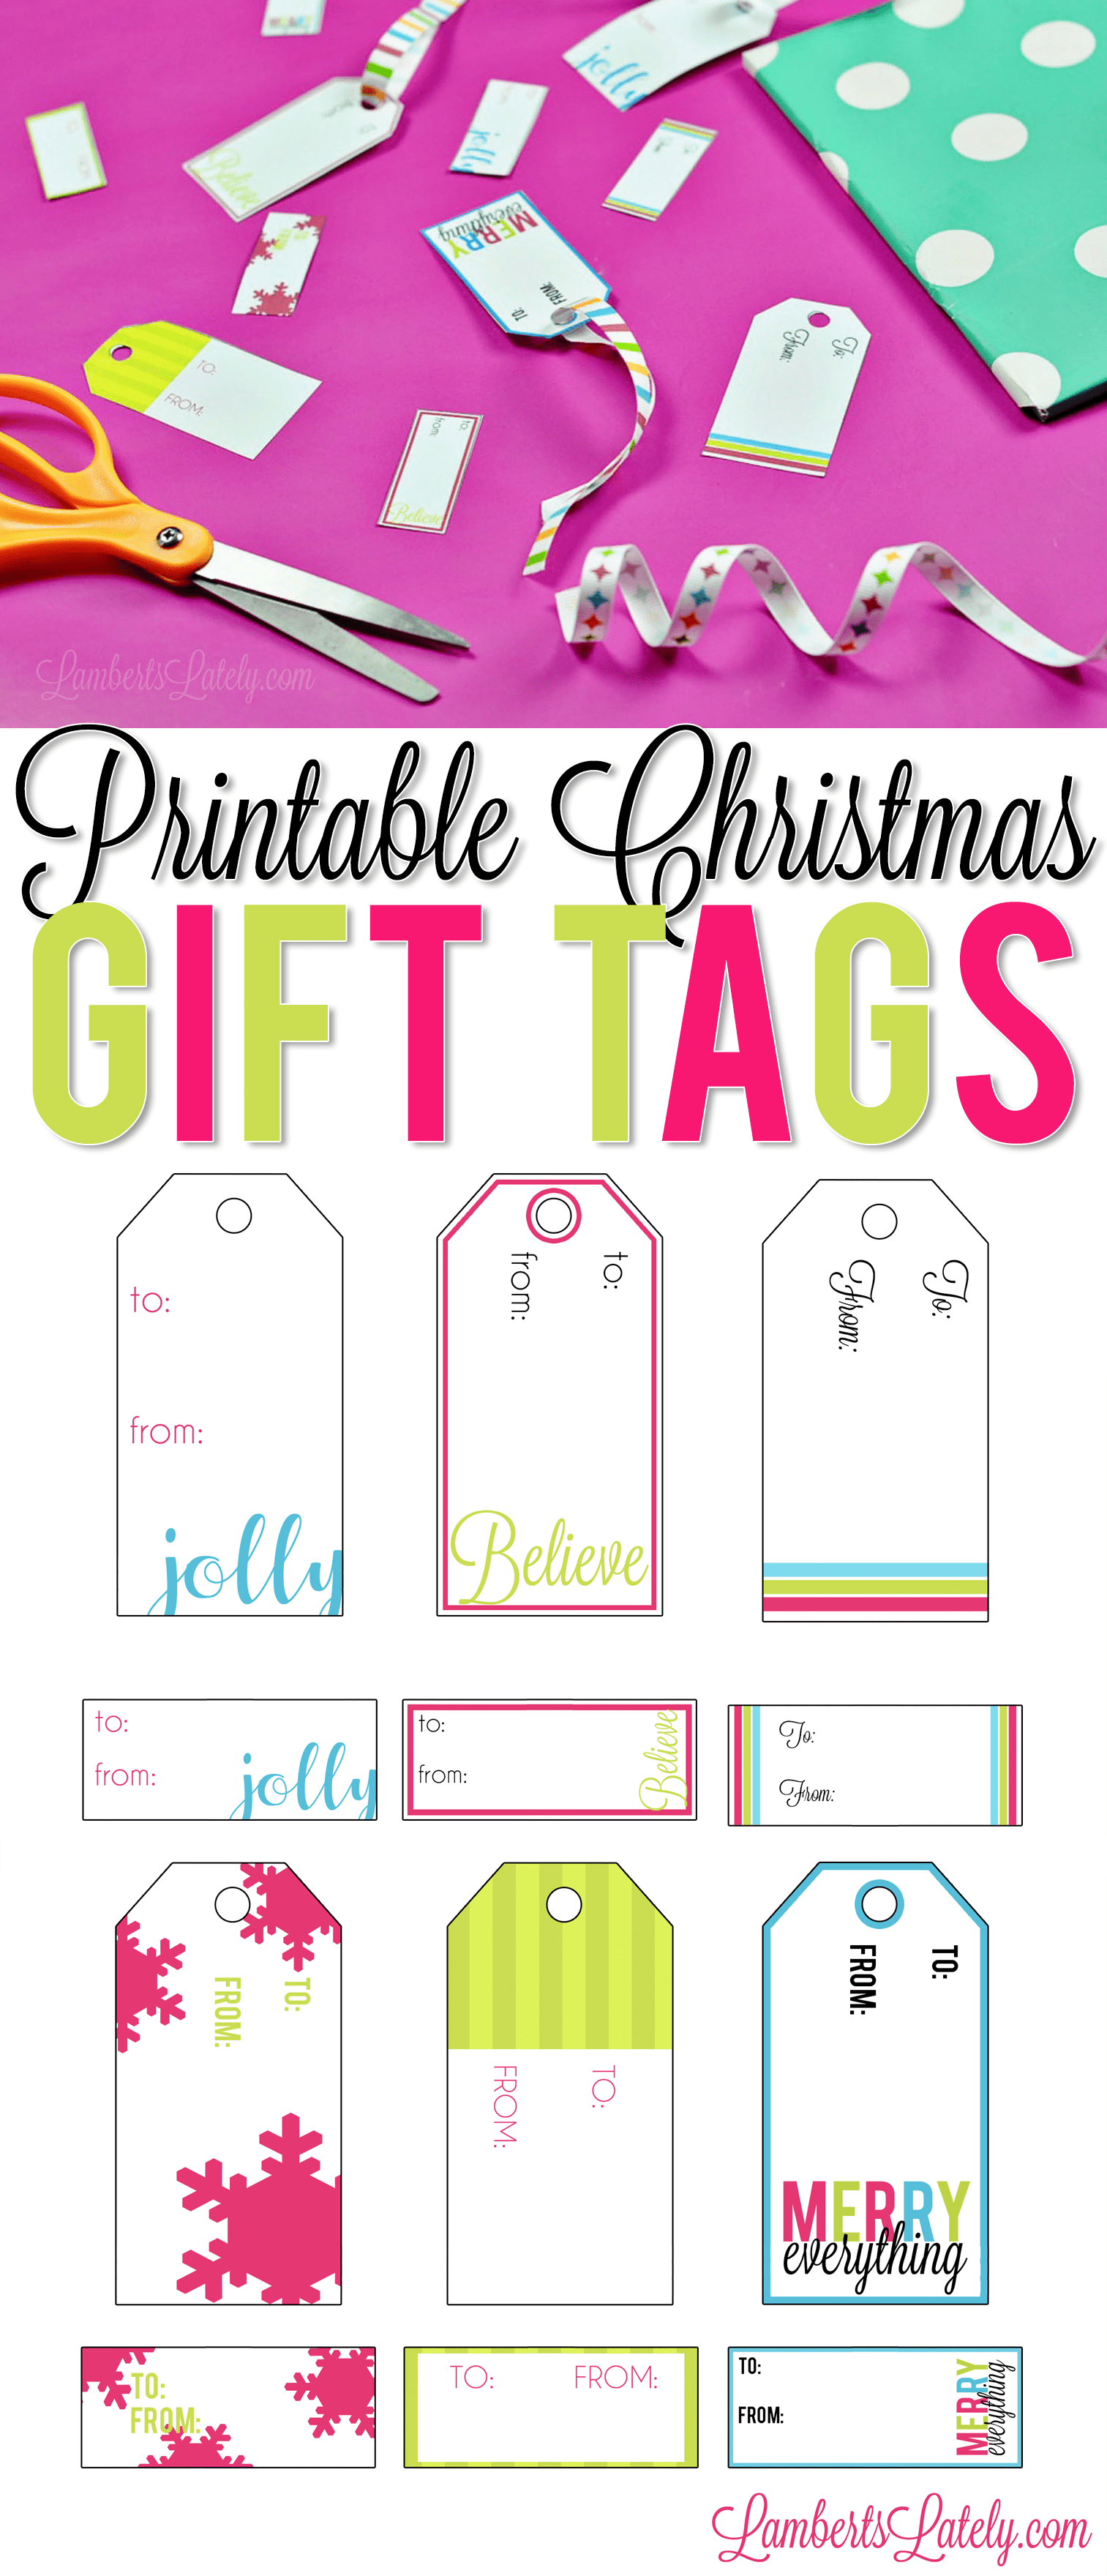 photo relating to Christmas Tags Printable titled Printable Xmas Present Tags Lamberts Just lately